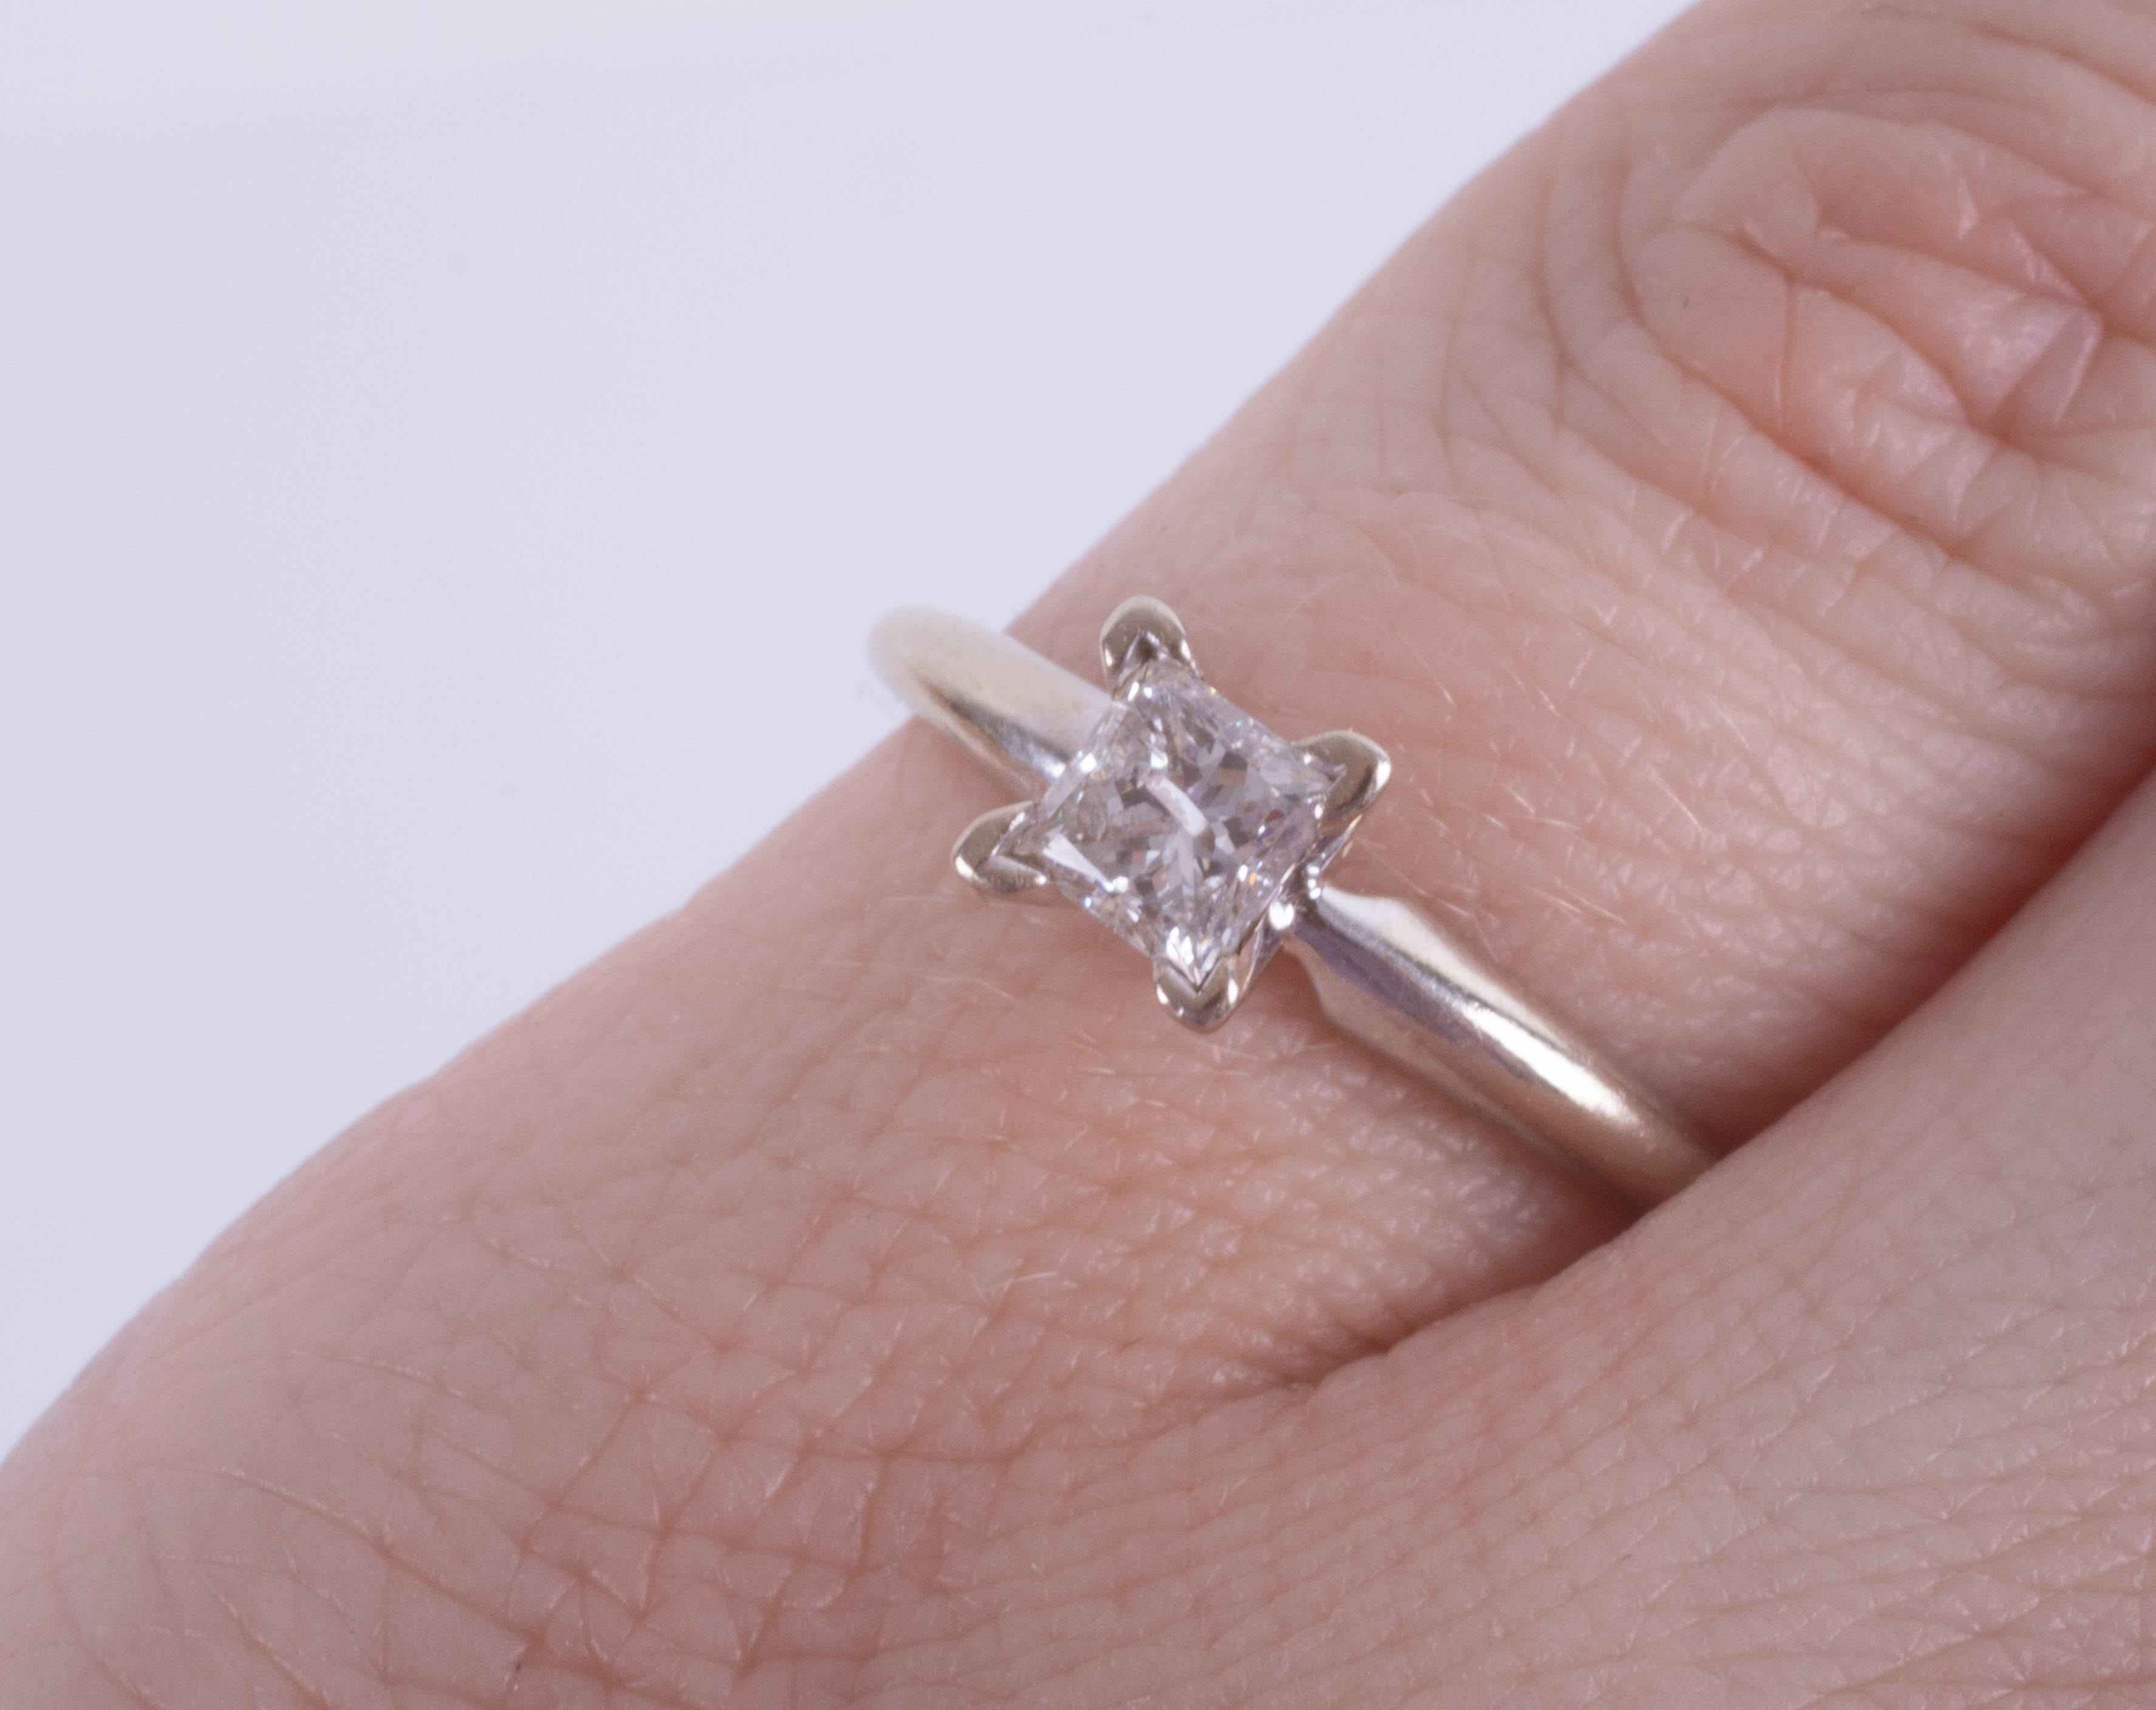 An 18ct white gold princess cut diamond ring, approx. 0.45ct, ring size I. - Image 2 of 2